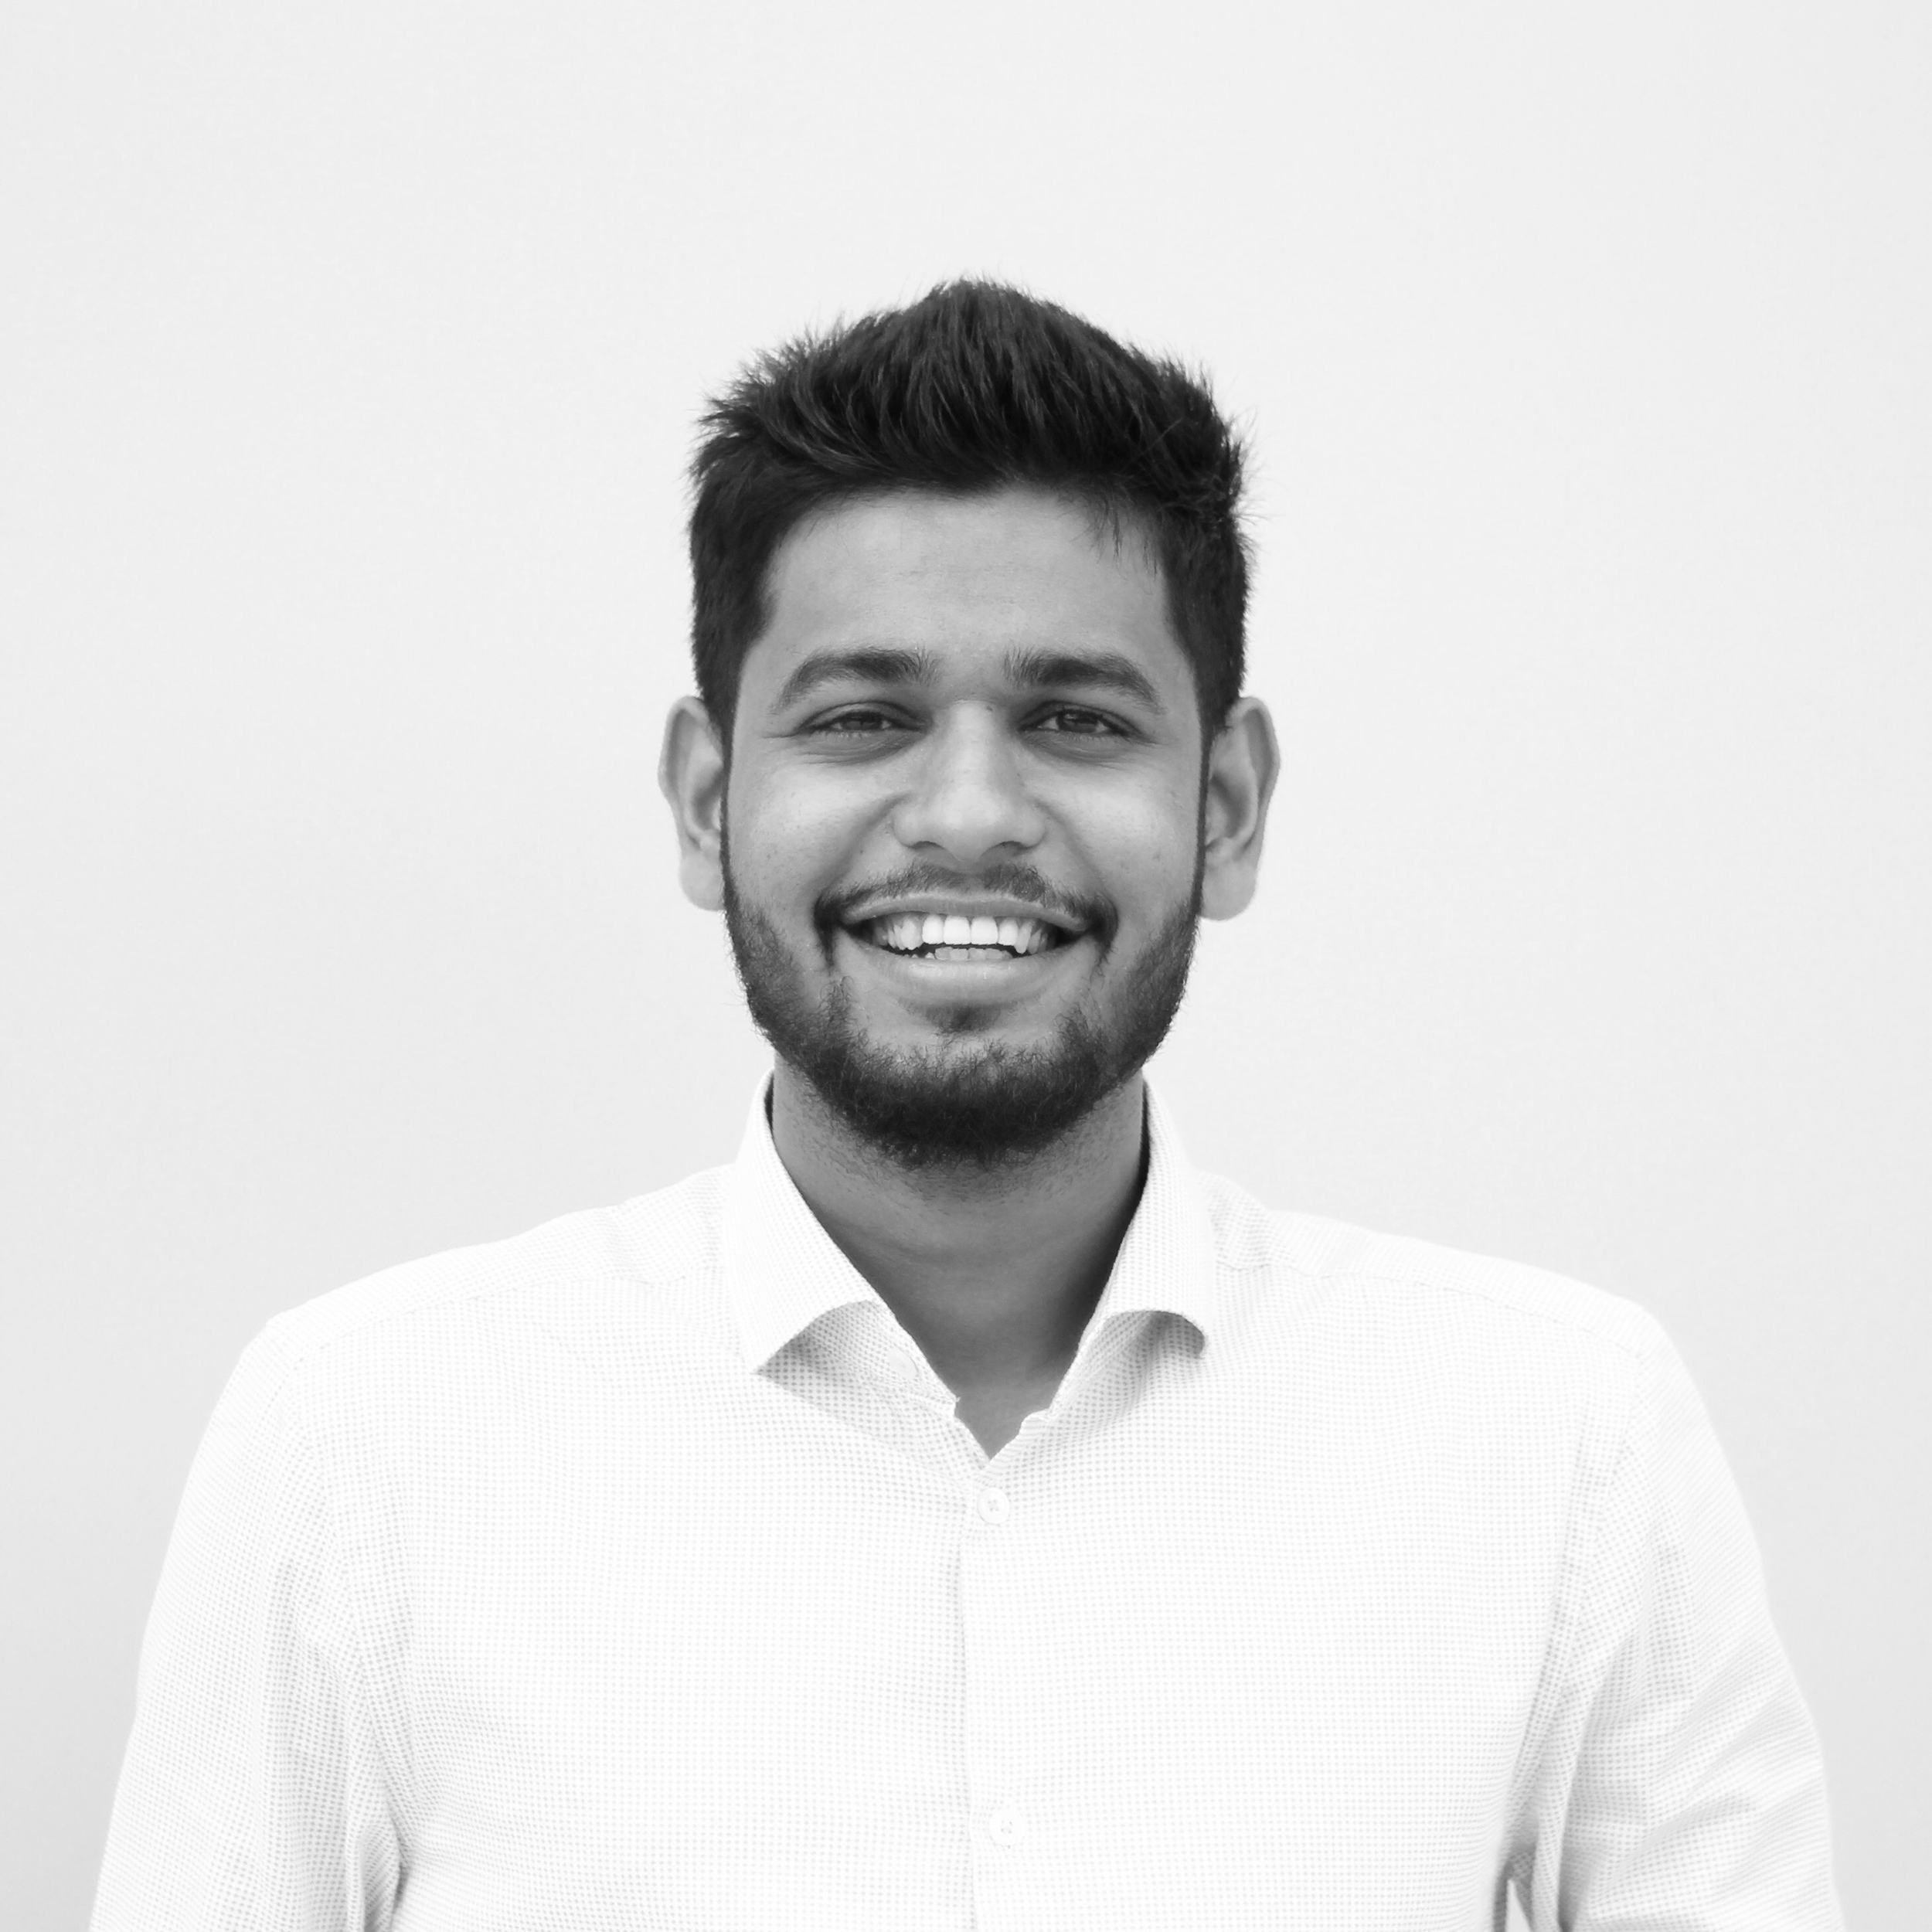 Hardik sojitra - Excited about all things startup and entrepreneurship. Deeply interested in business model generation, operations, and finance. Bollywood fanboy at heart and a devourer of panipuris.LinkedInTwitter